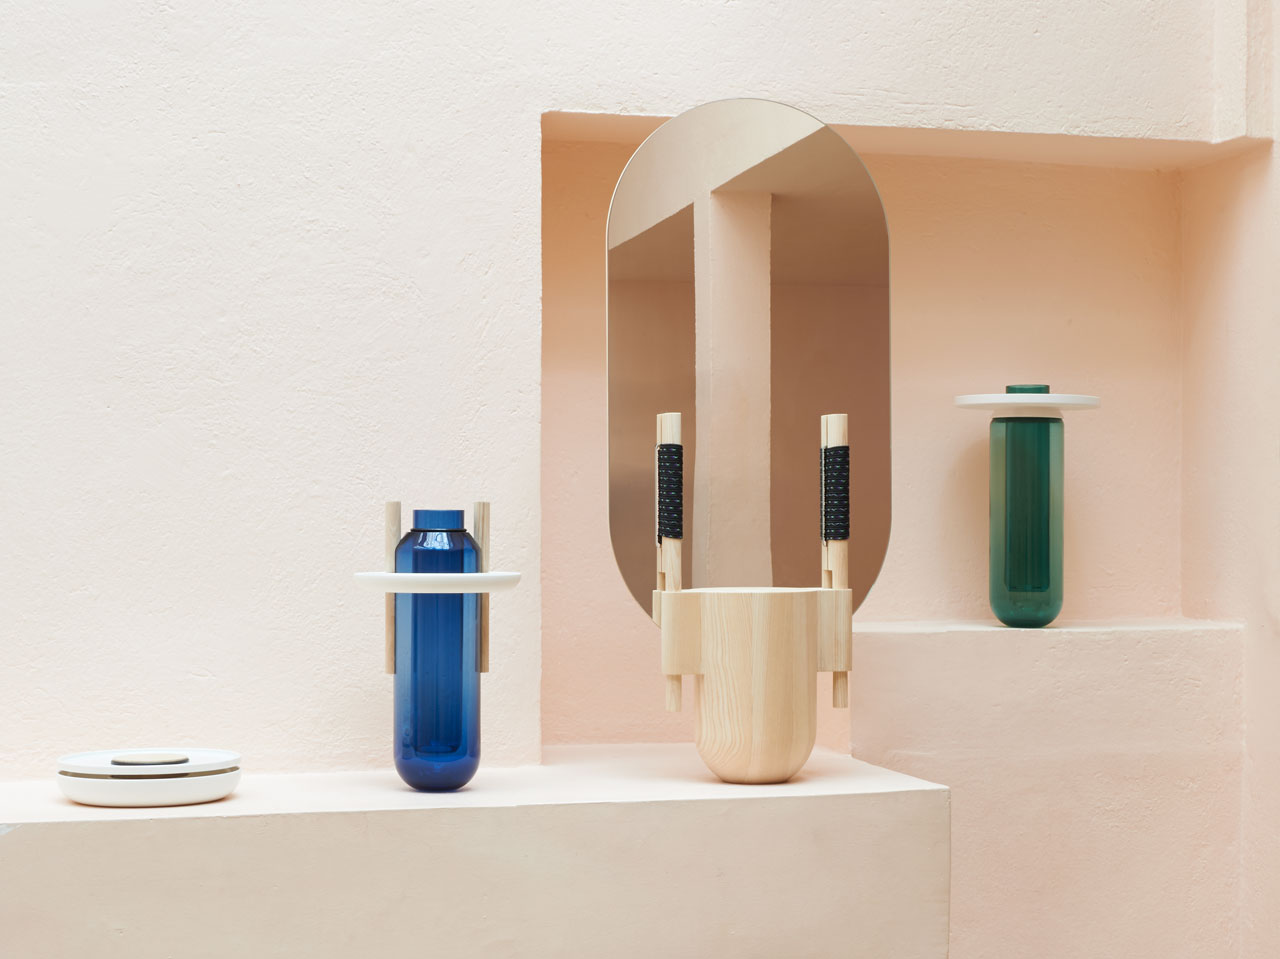 Vases Composés (produced by the Cirva and the Manufacture nationale de Sèvres)Standing Mirror(edited by Galerie kreo andproduced byHubertWeinzierl workshop) andBoxes : Joint Creux (produced by the Manufacture nationale de Sèvres) by French designer Samy Rio.